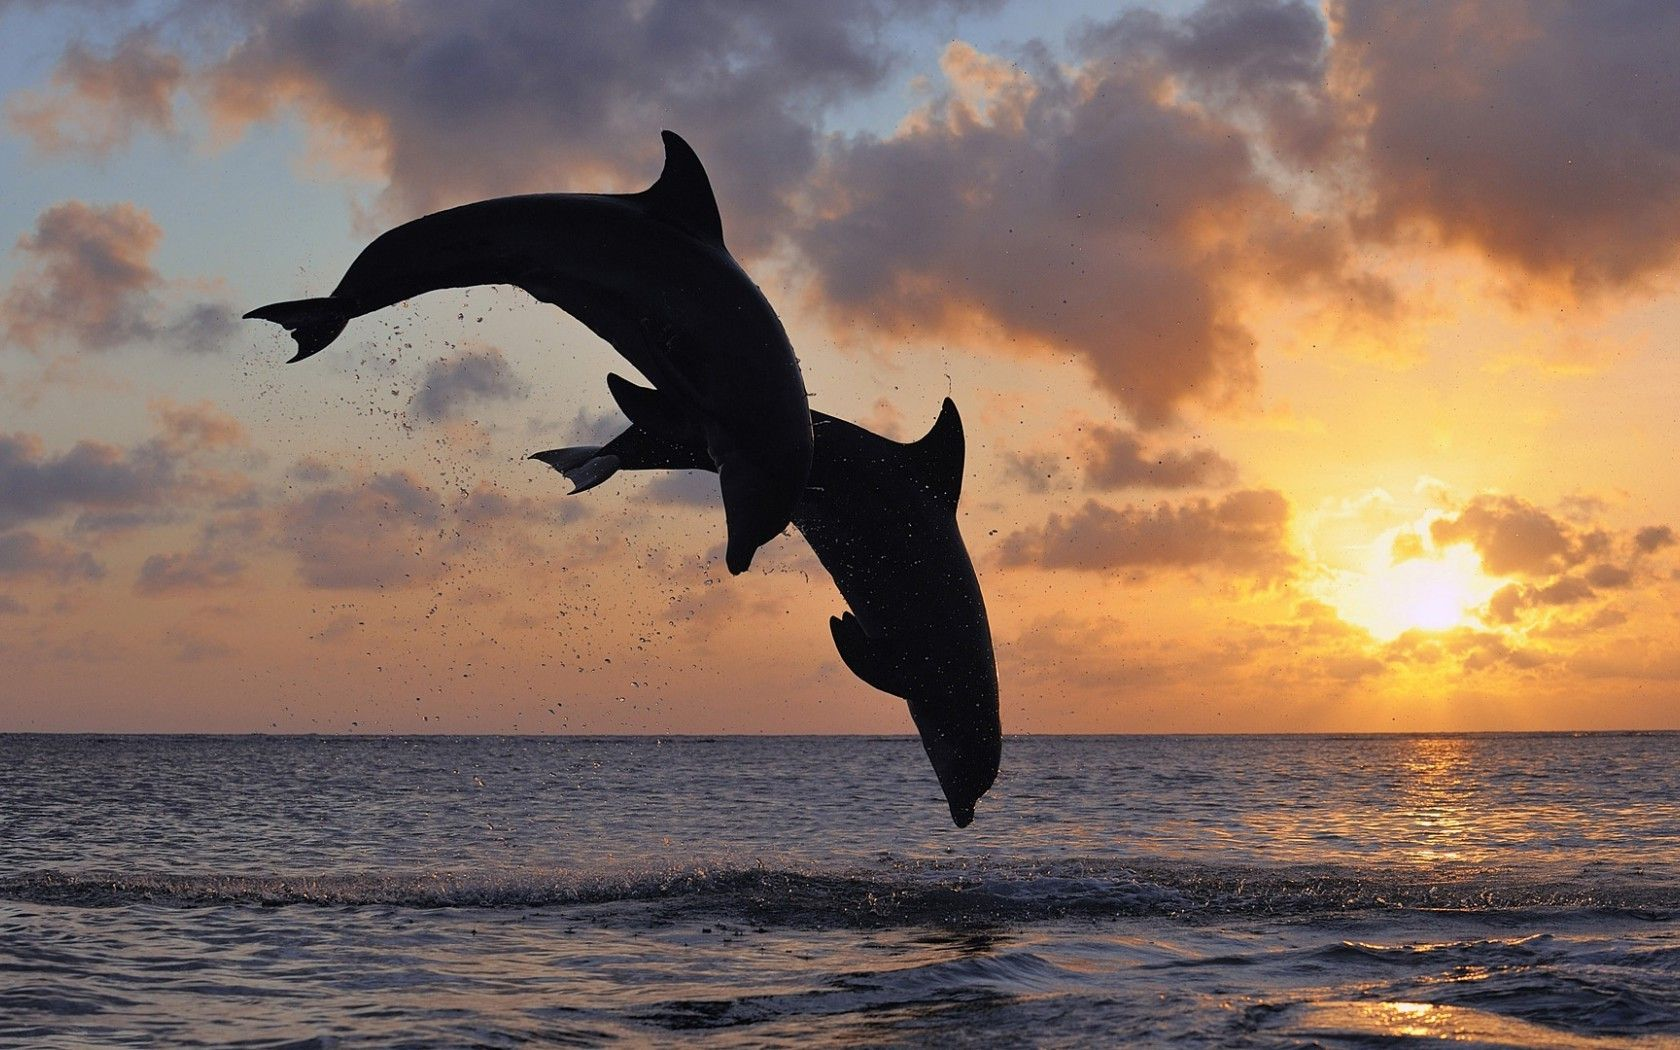 Dolphin Sunset Wallpapers Dolphins, Topsail beach